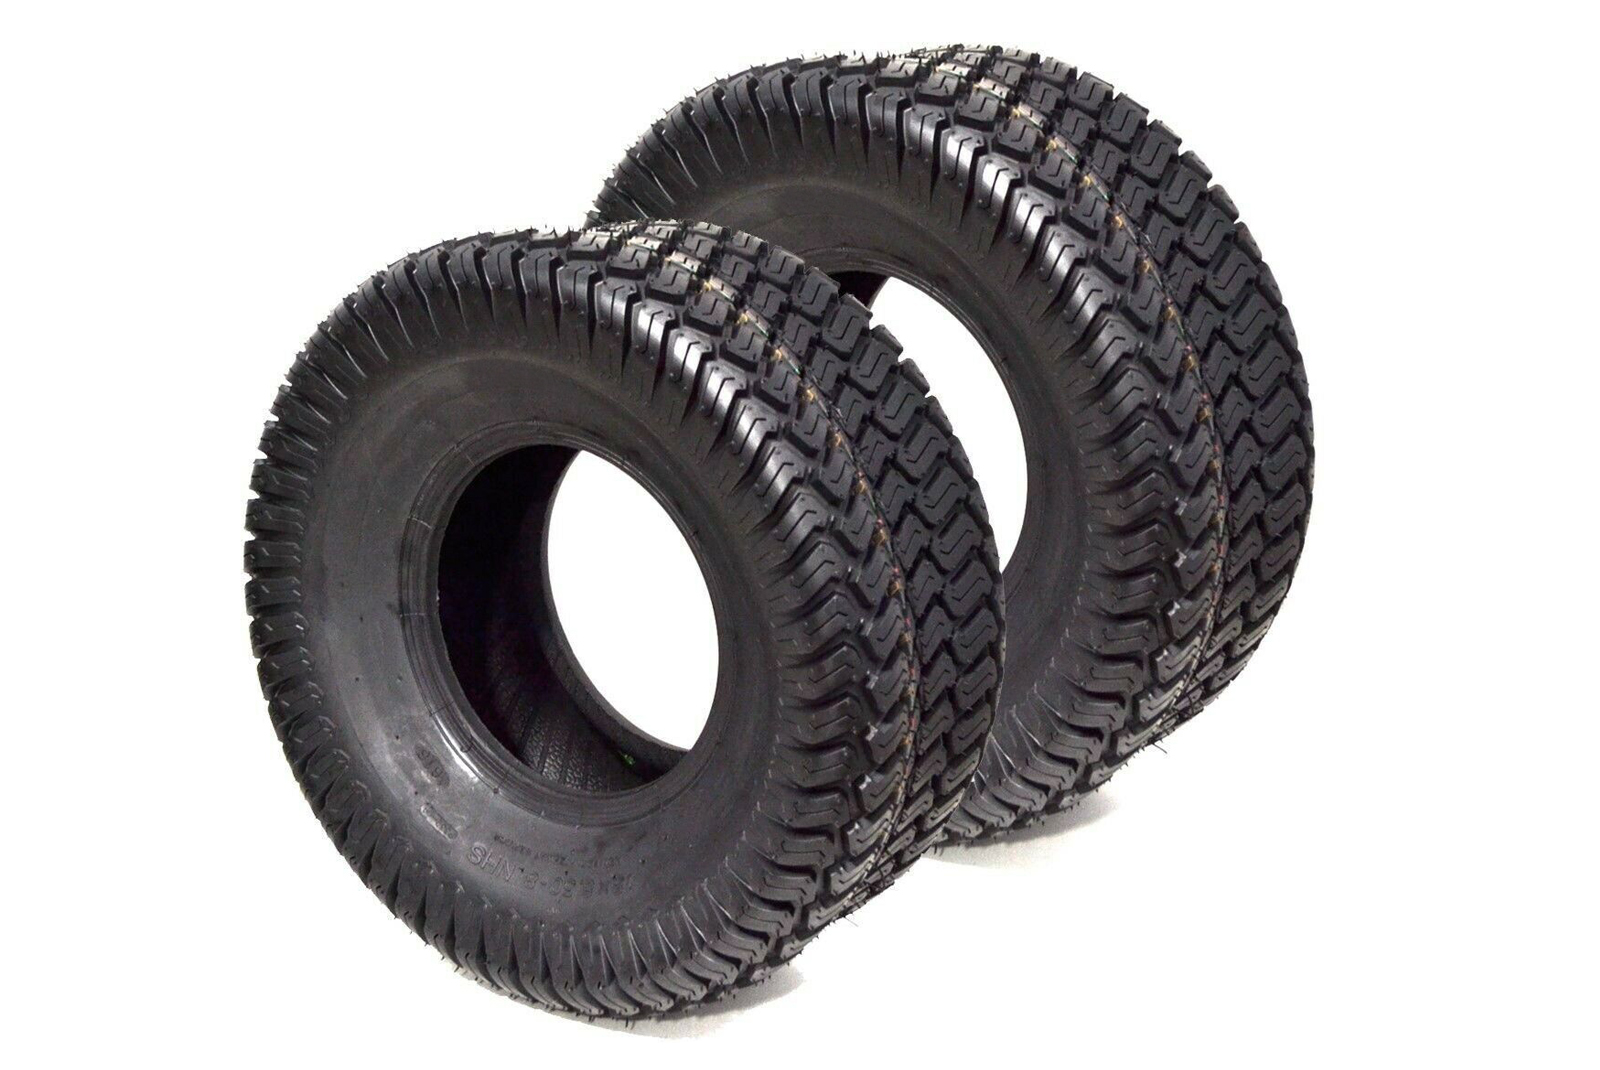 Set of 2 ProMaster 13X6.5-6 lawn mower tubeless tires 4 Ply